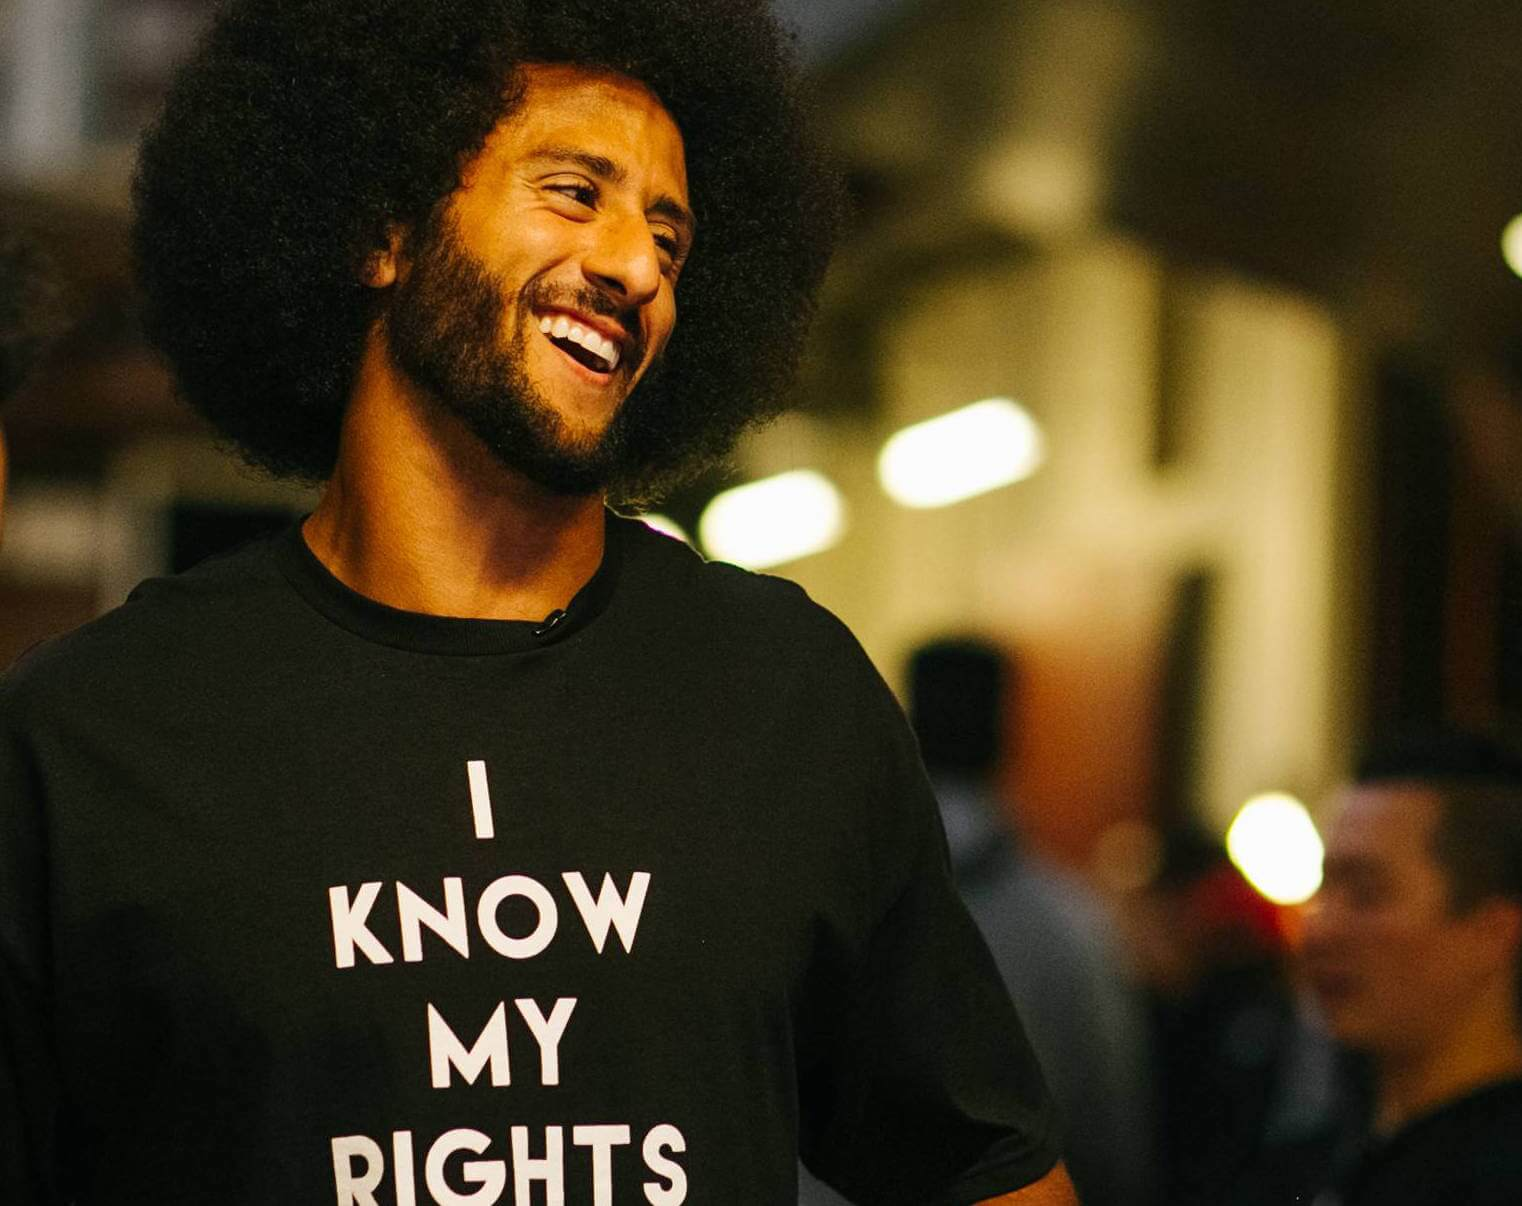 33bade689 I refuse to observe the NFL boycott because it is steeped in hypocrisy and  misogynoir.